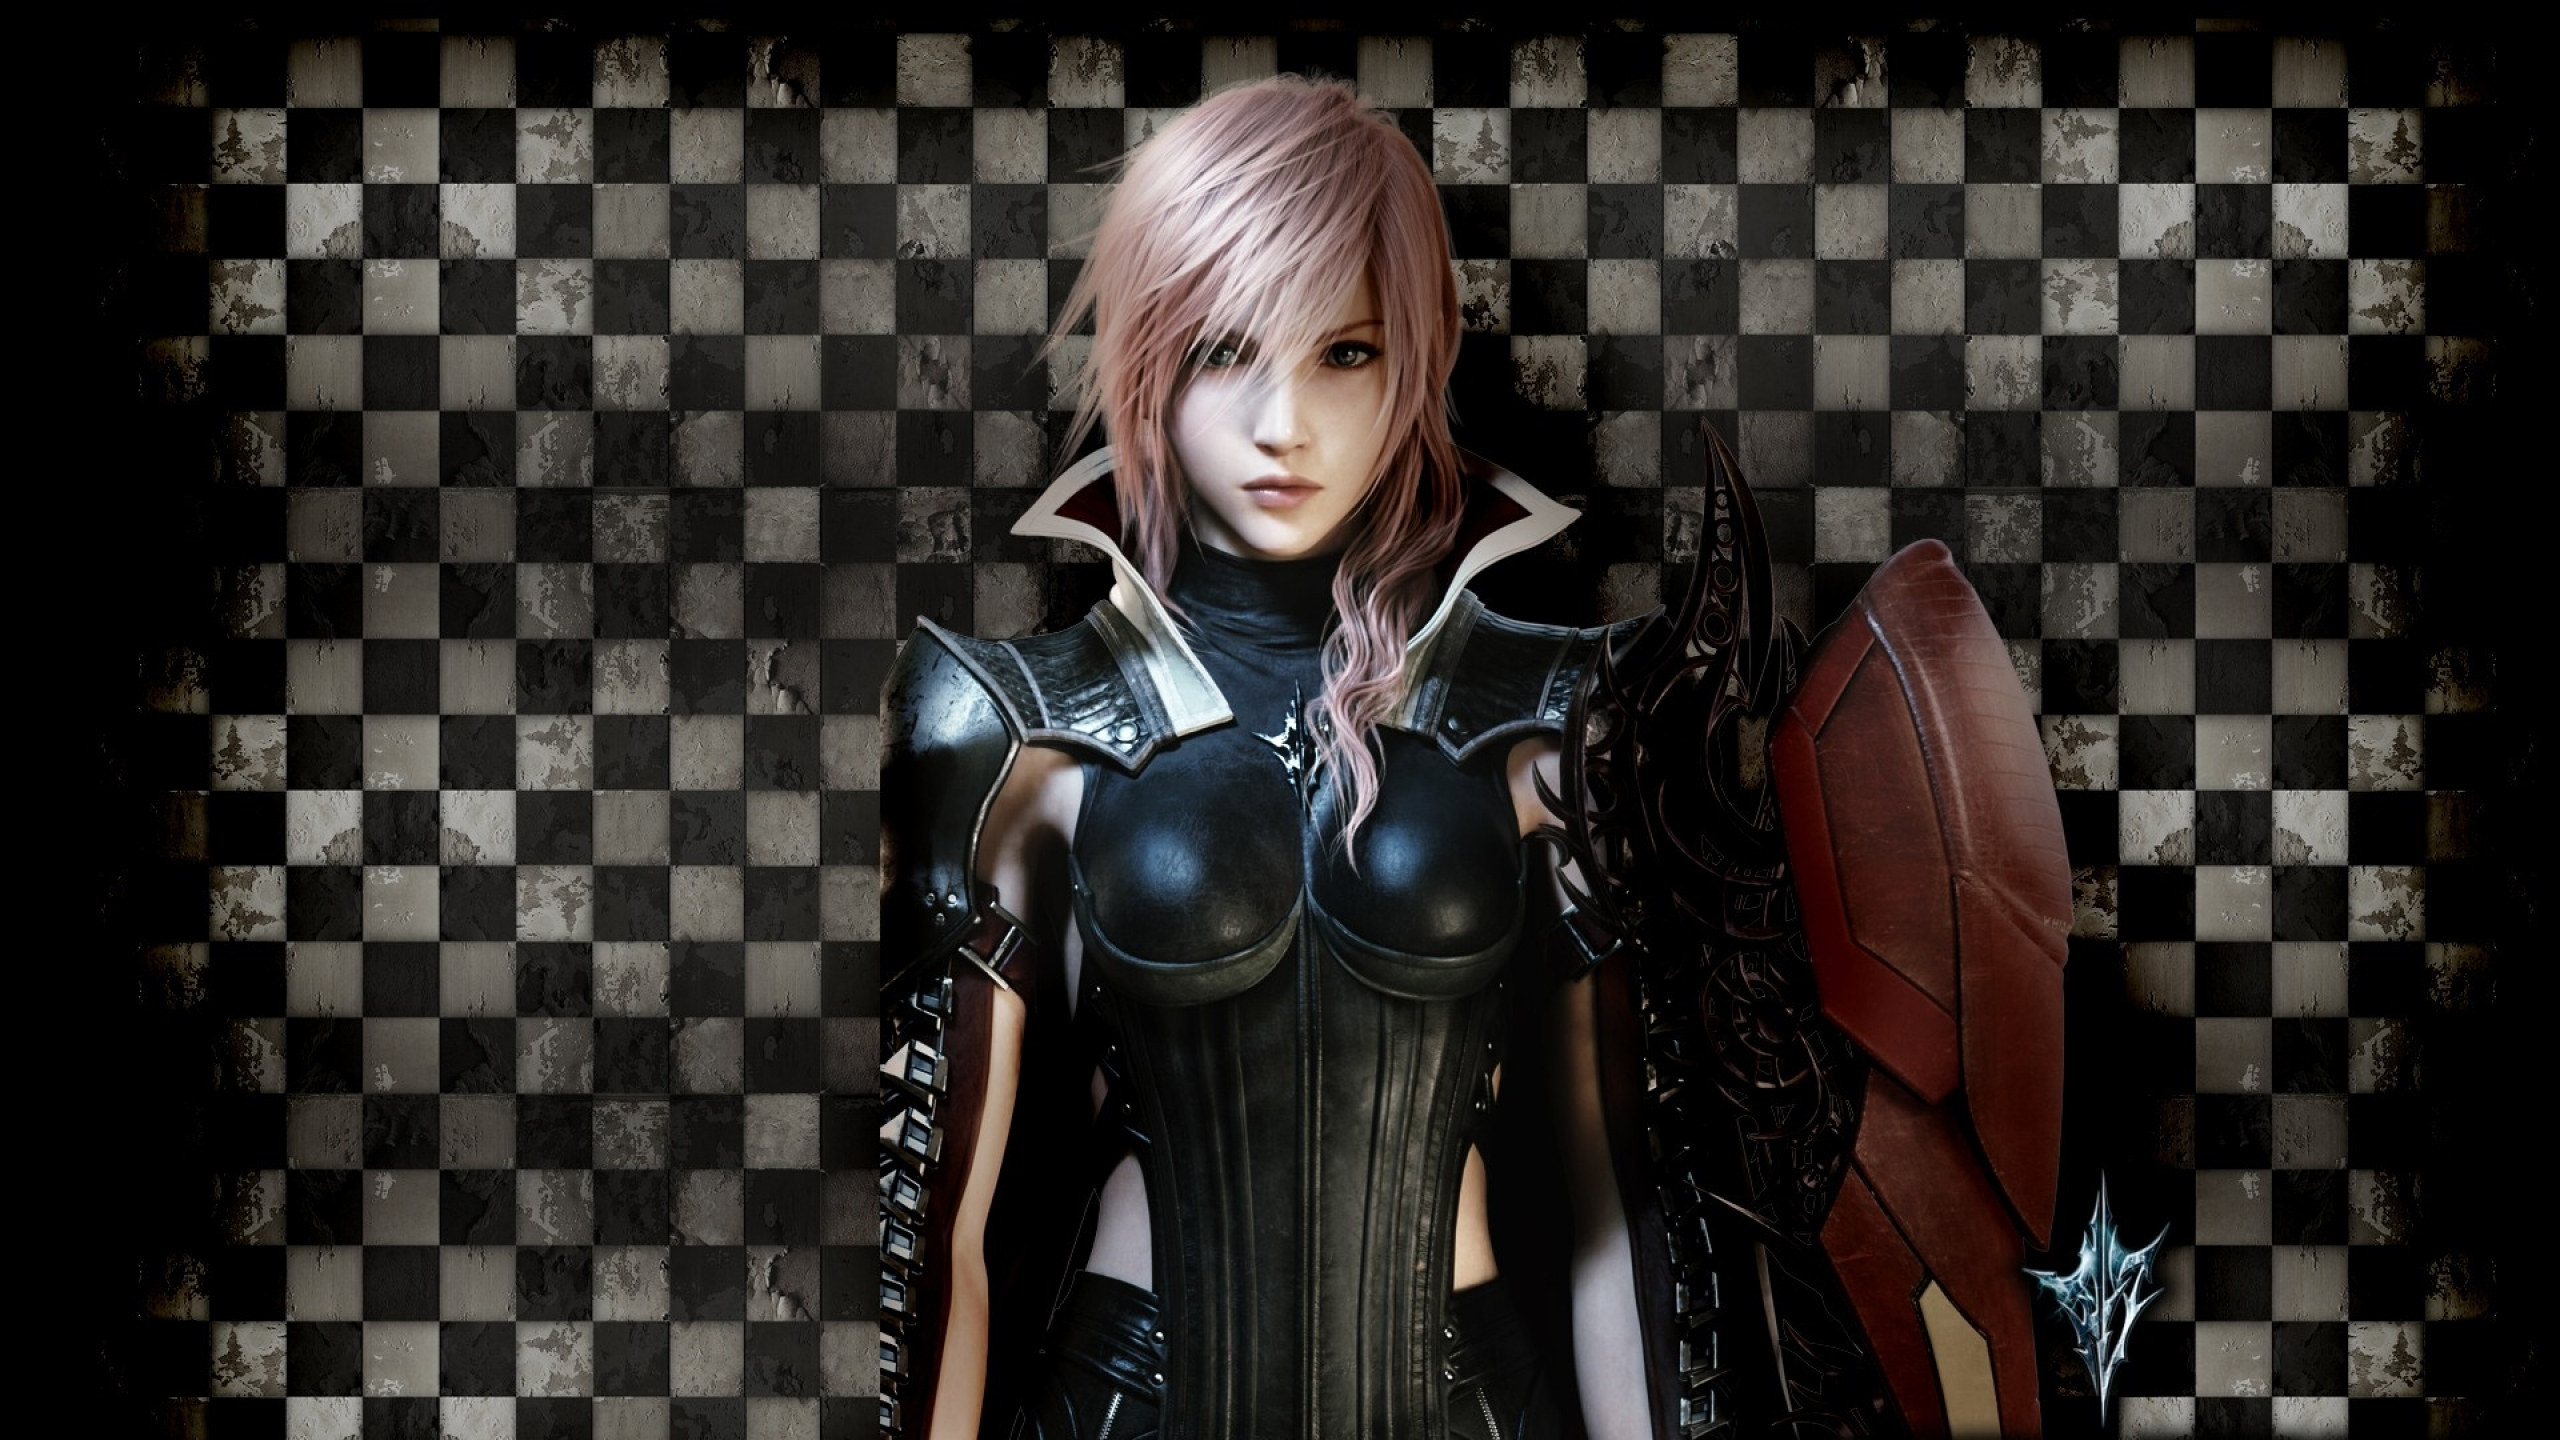 Lightning wallpaper collection 1920x1080 finalfantasy a great collection but how come no wallpapers from lightning returns voltagebd Choice Image